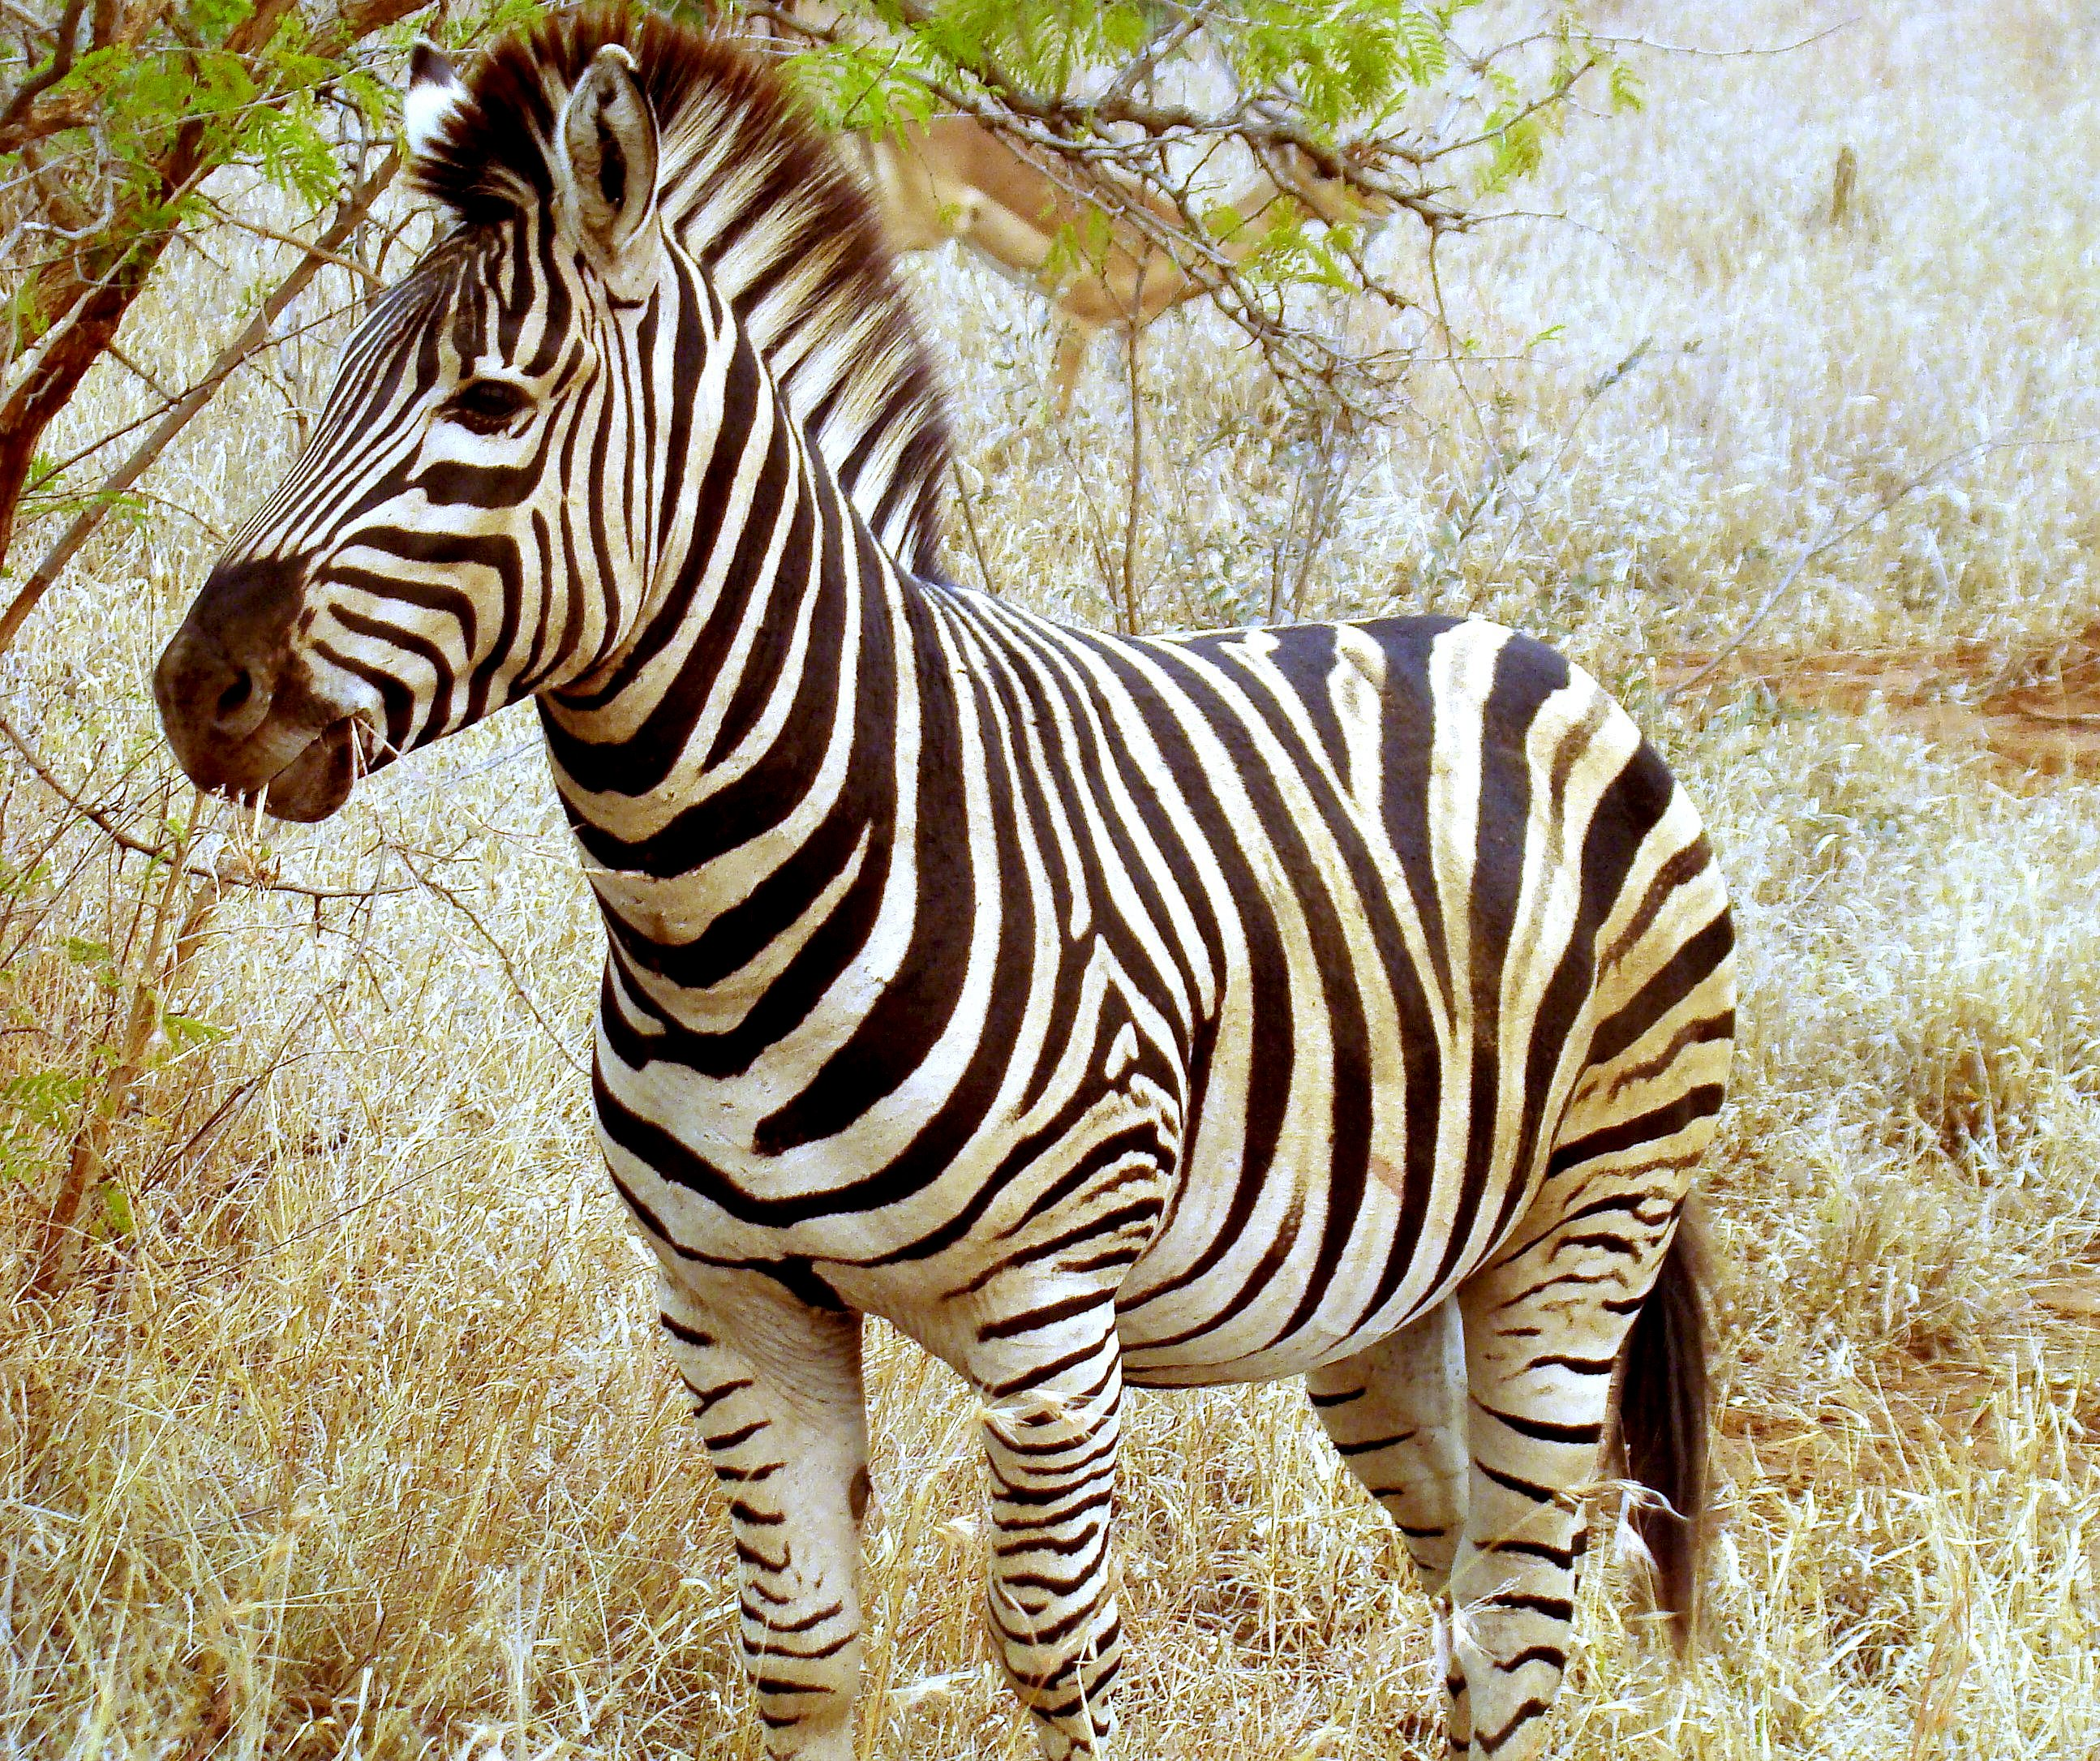 Http Commons Wikimedia Org Wiki File Beautiful Zebra In South Africa Jpg